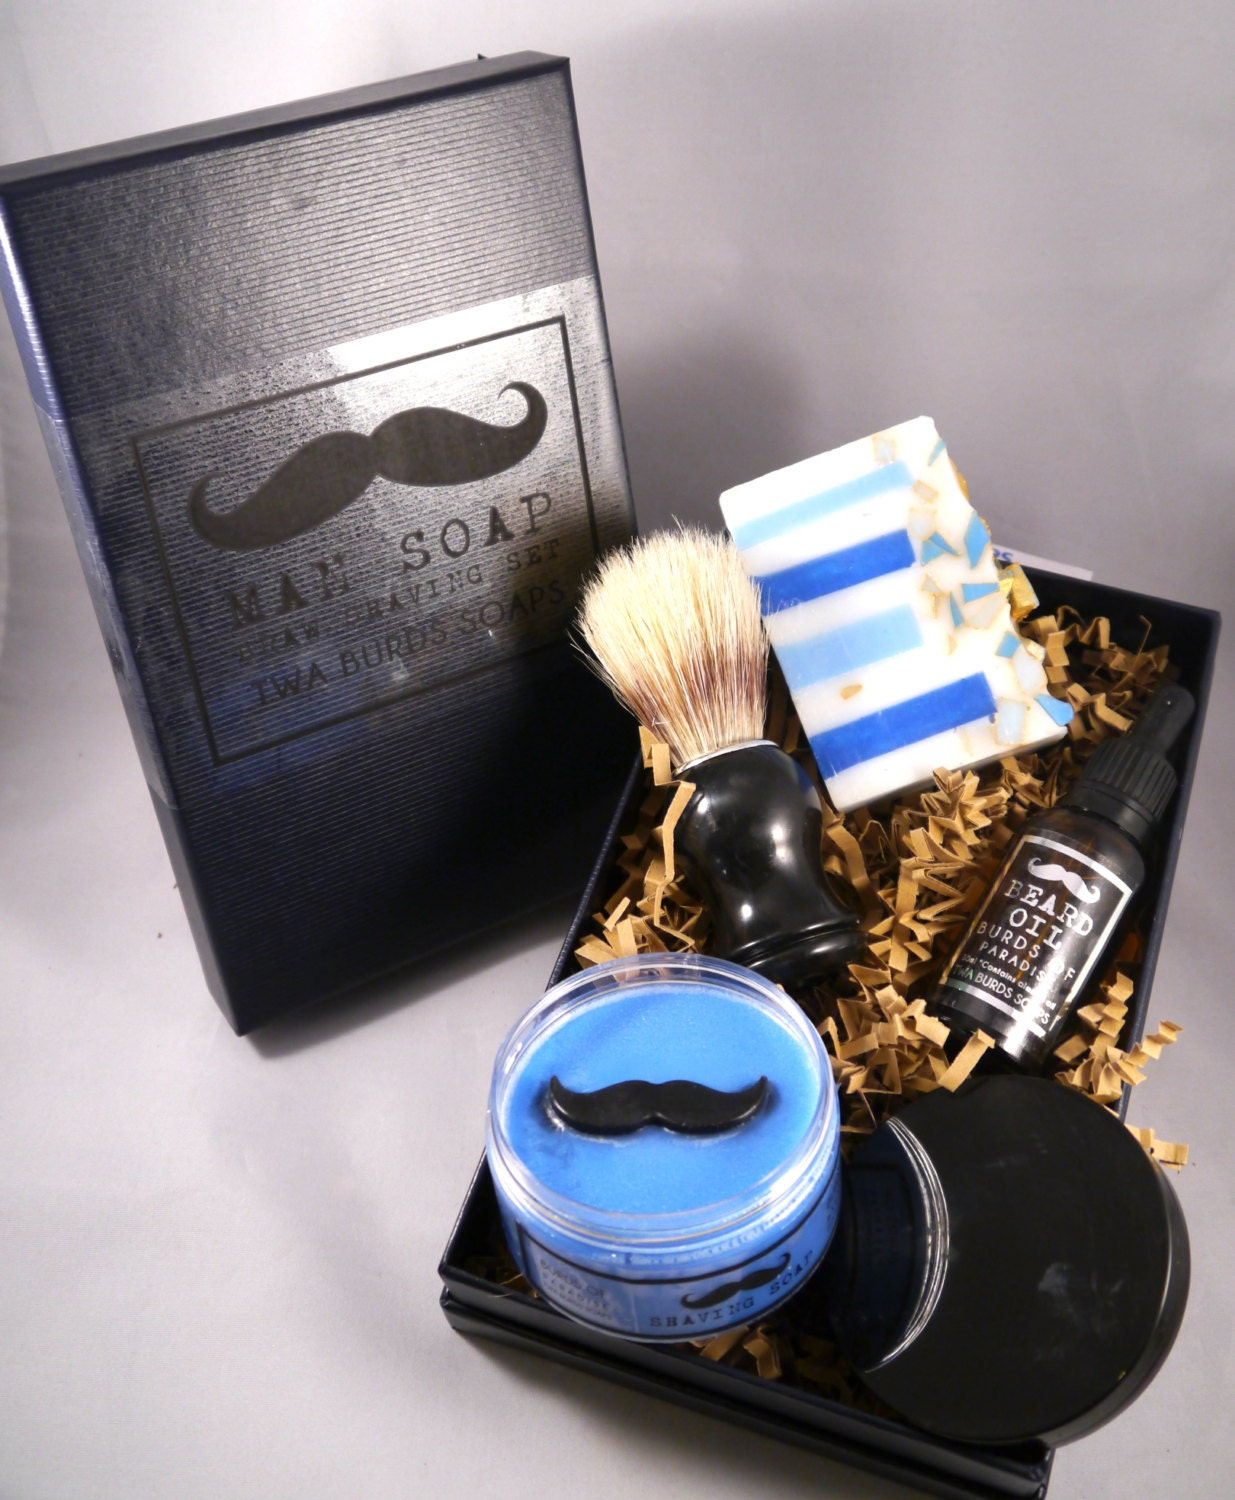 vegan beard grooming kit 3 vegan friendly male valentines grooming gifts the beard grooming. Black Bedroom Furniture Sets. Home Design Ideas